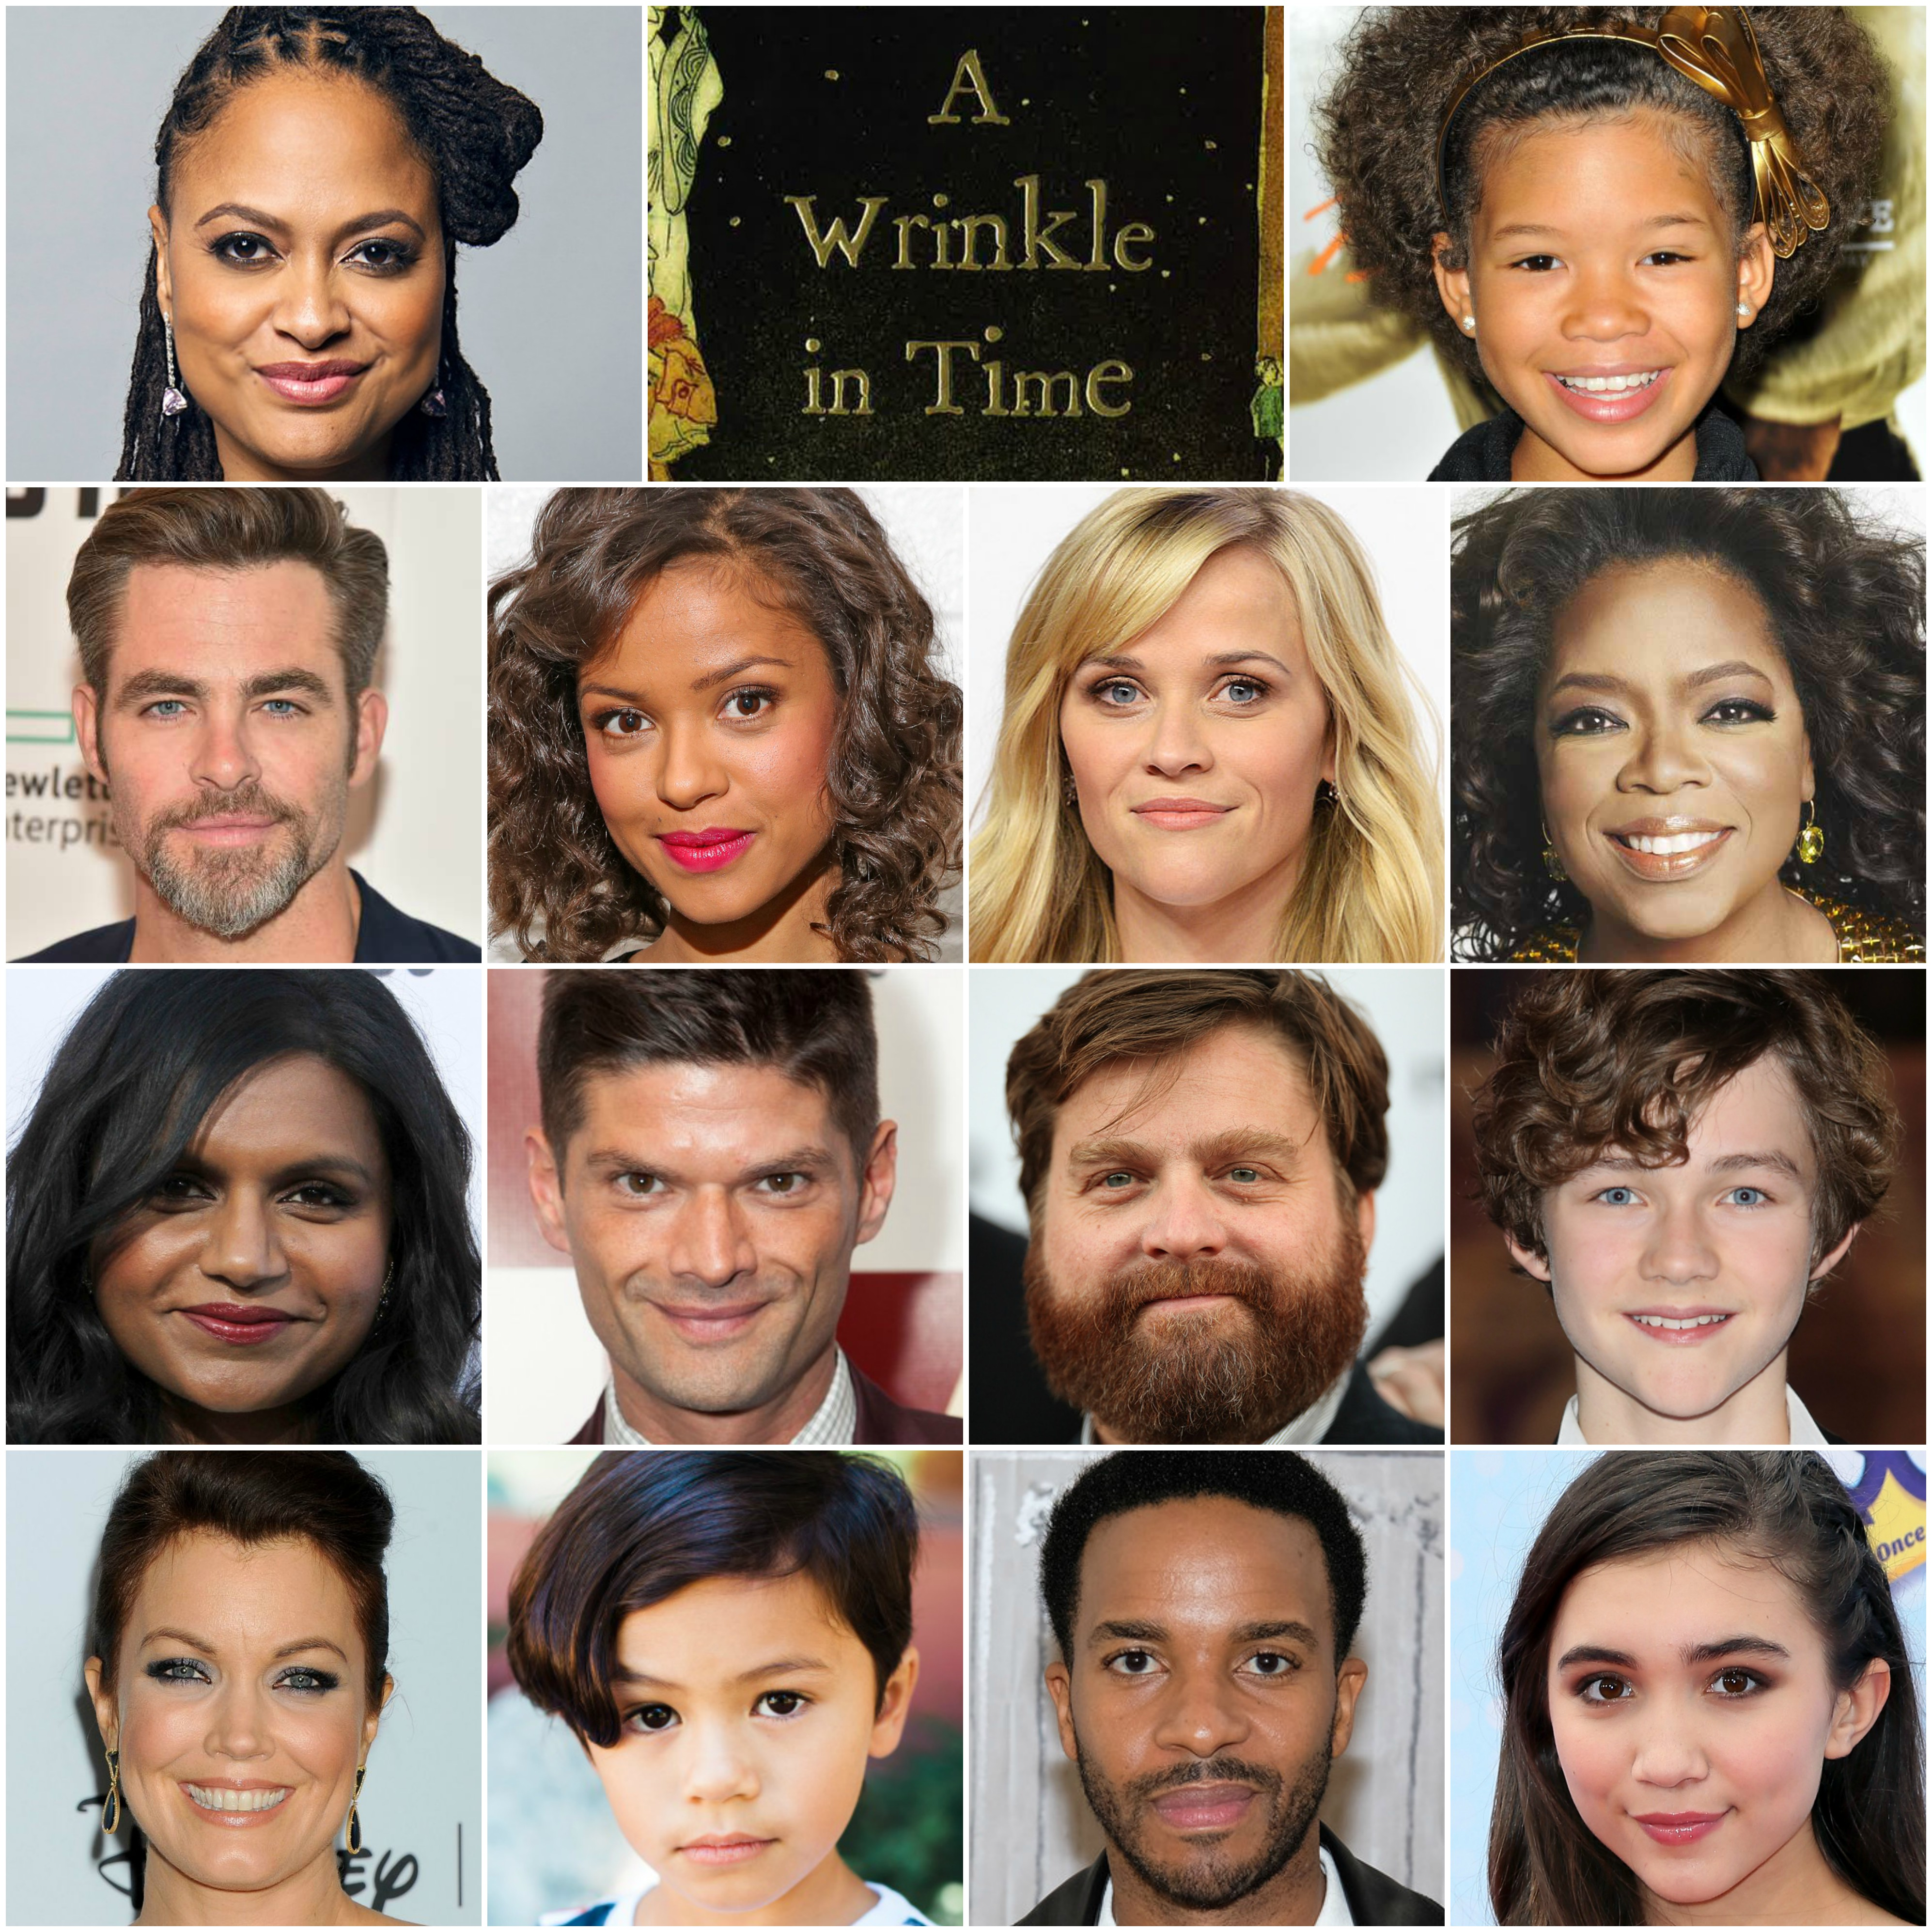 Production Begins For Ava DuVernays A Wrinkle in Time 3988x3988